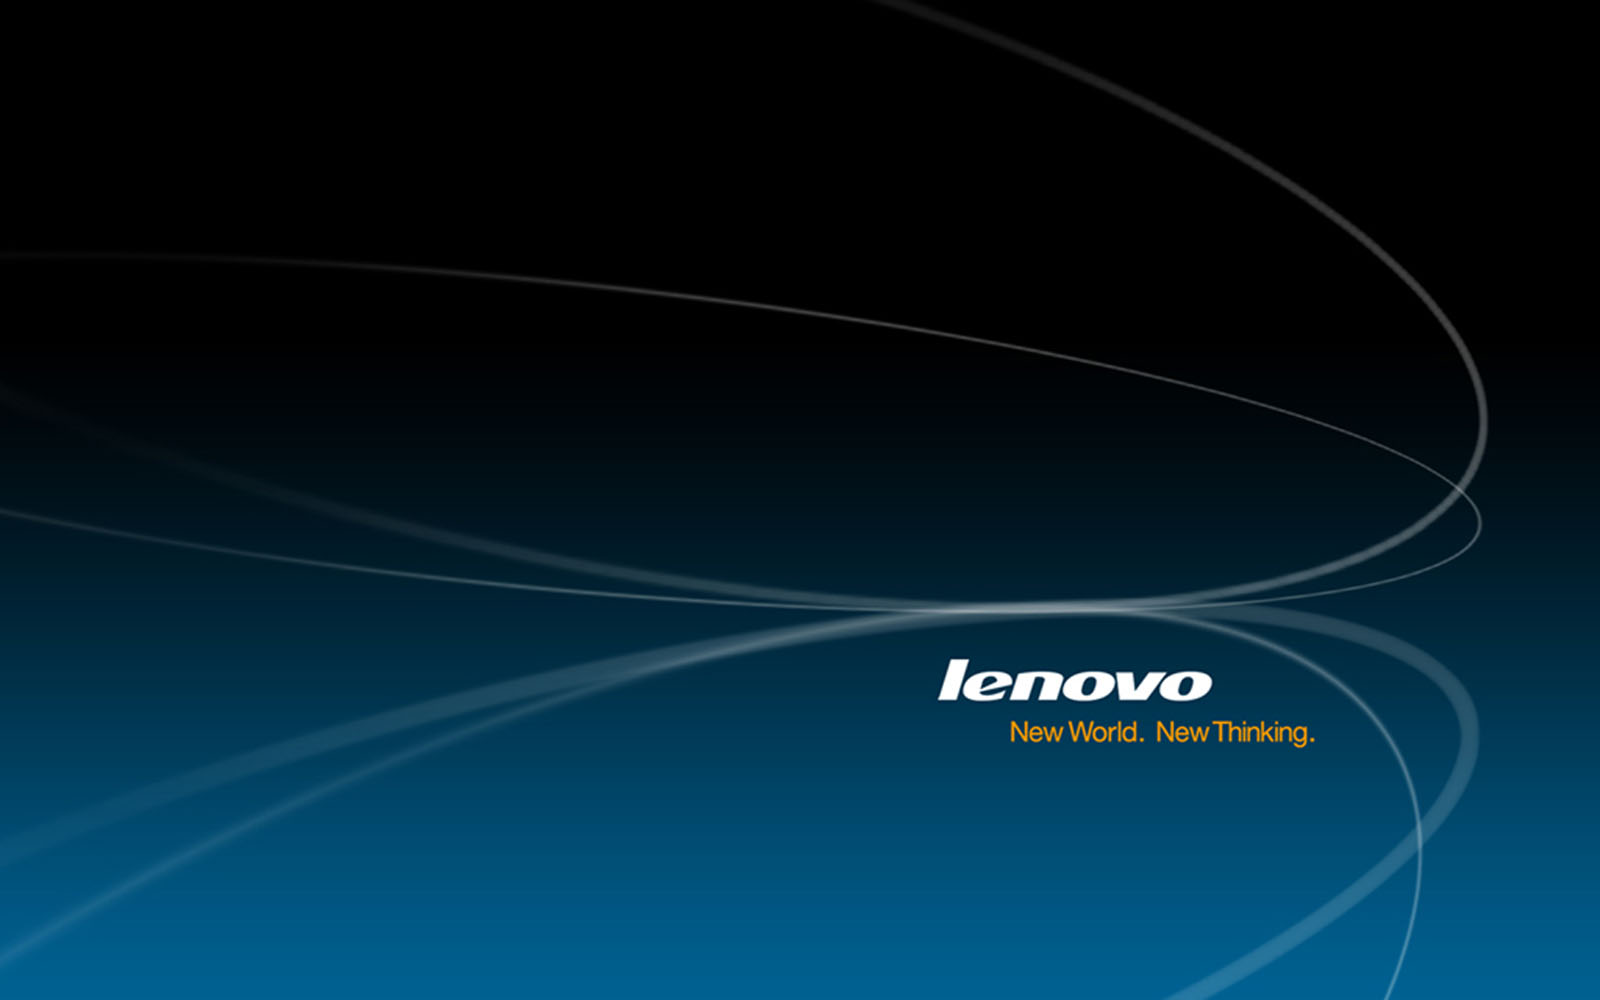 wallpapers: Lenovo Laptop Wallpapers